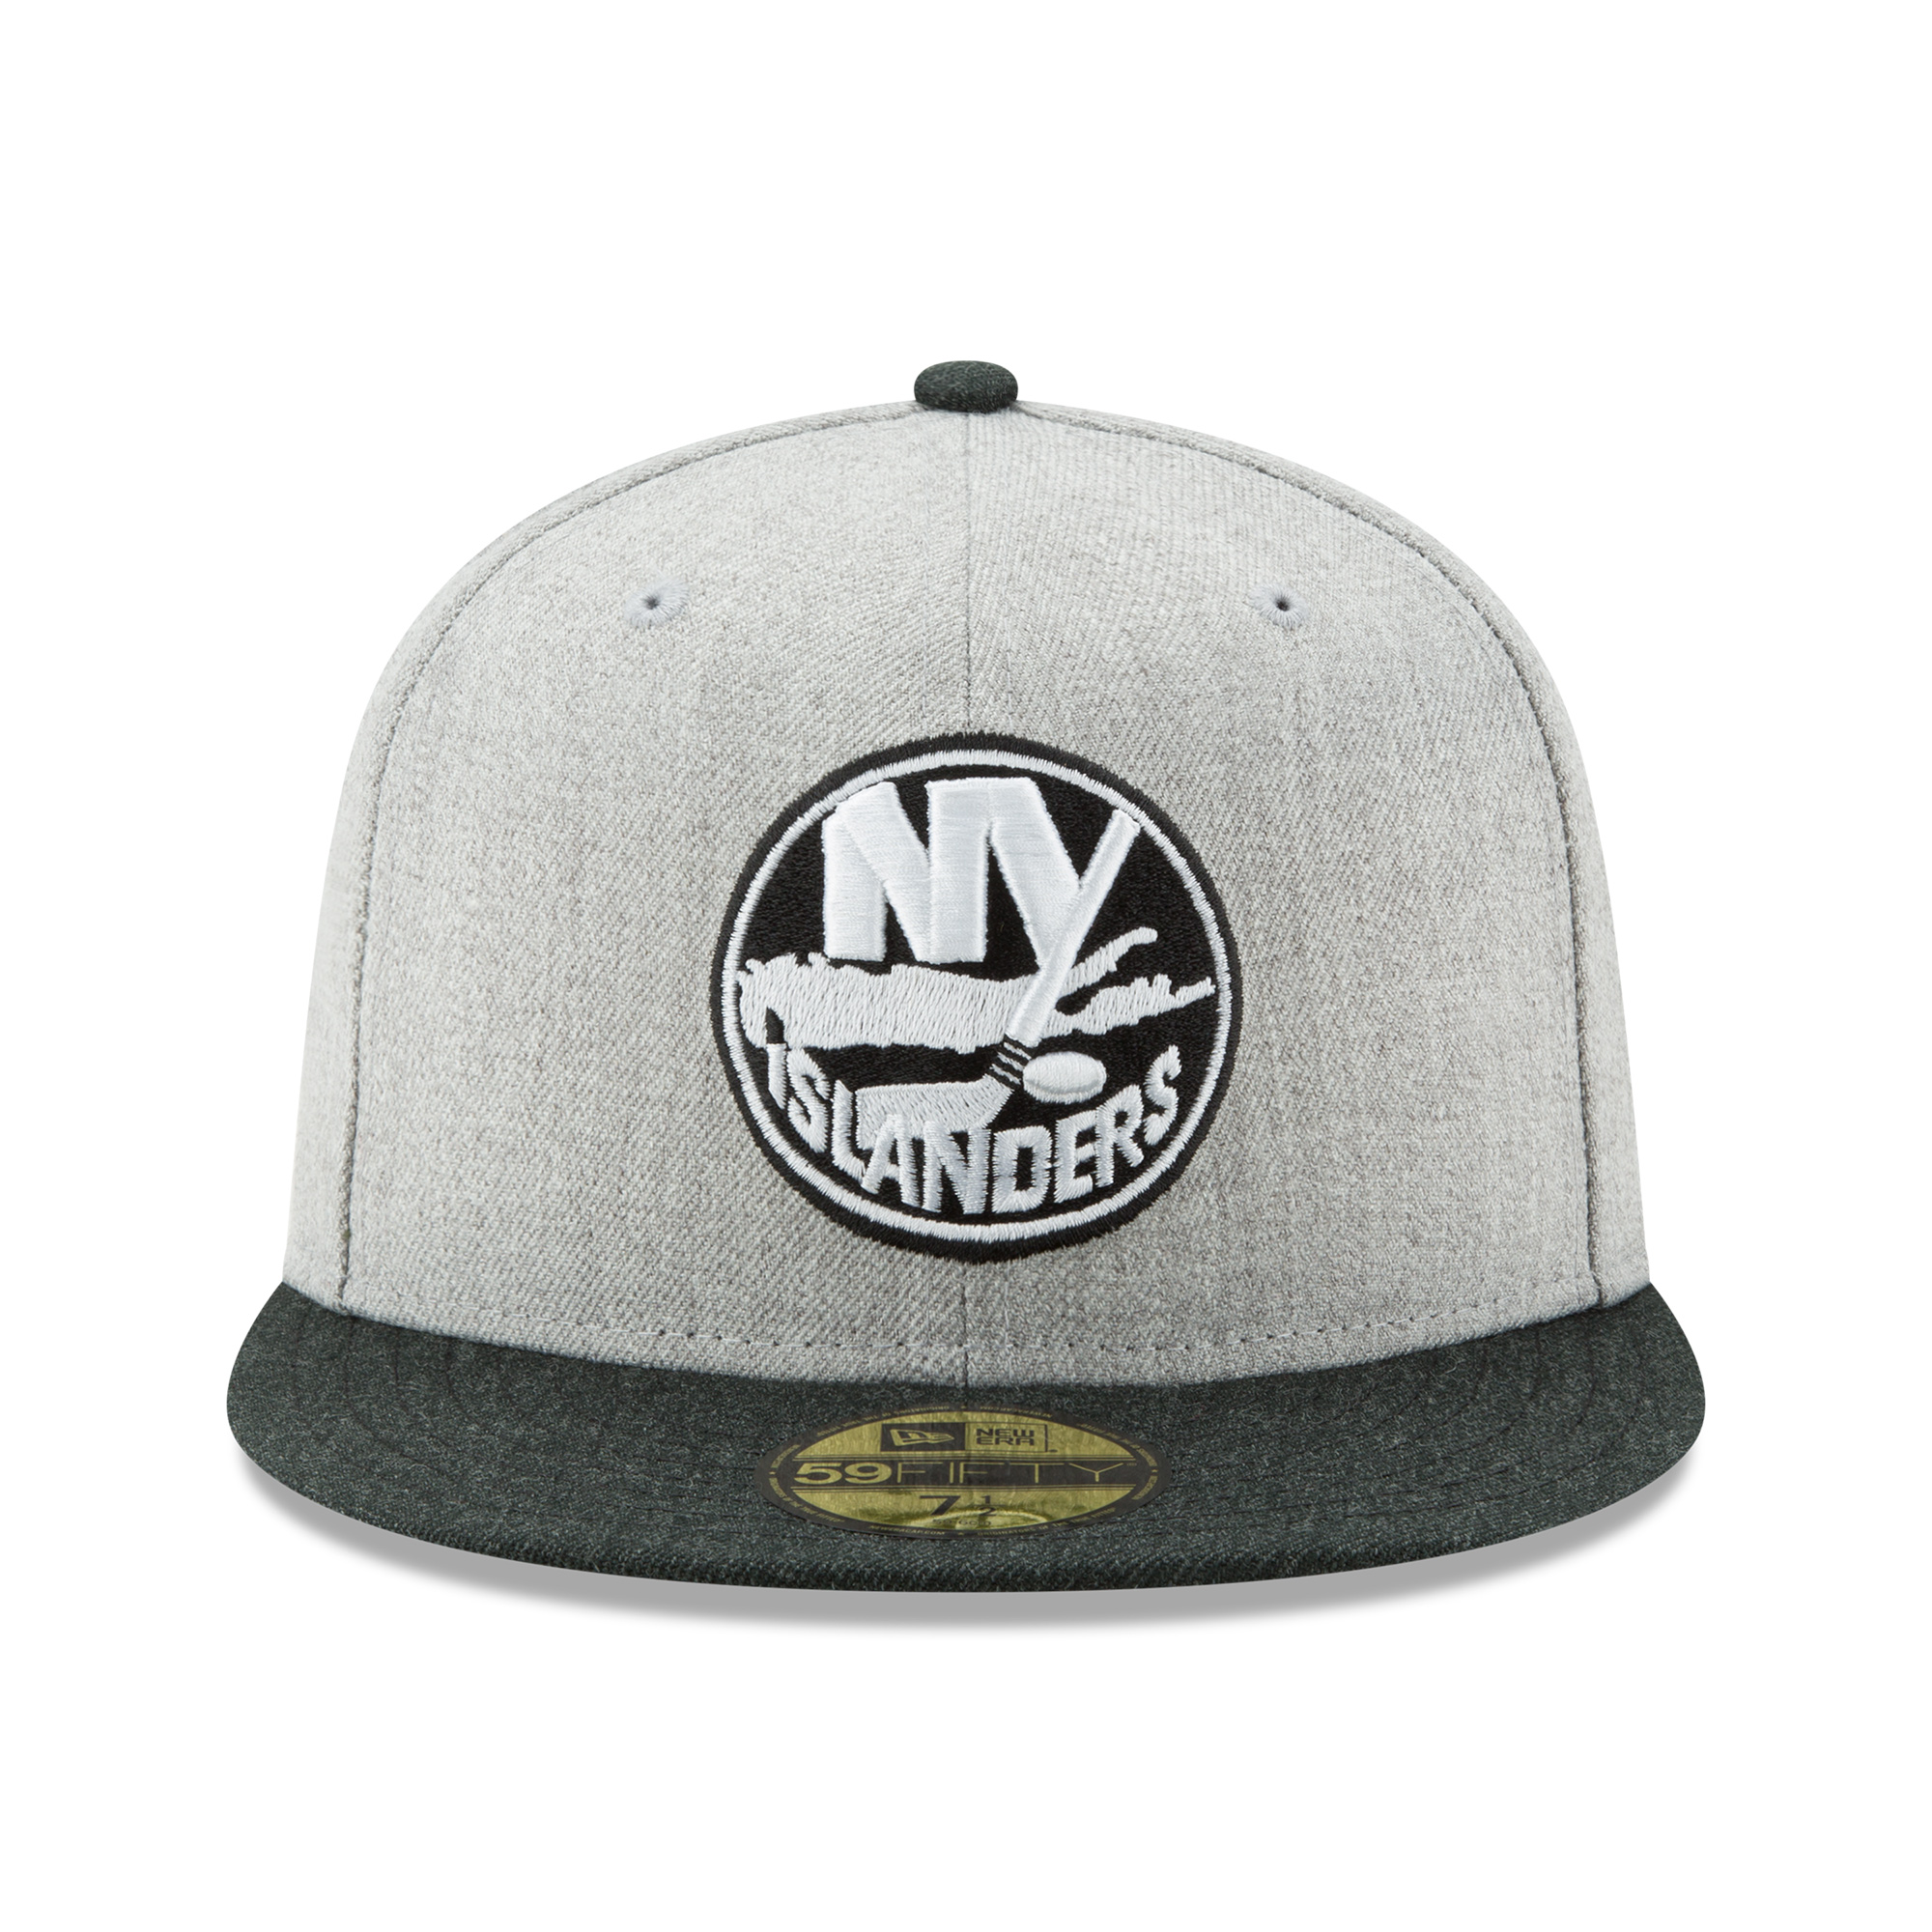 3cf60b32155 New York Islanders New Era Action 59FIFTY Fitted Hat - Heathered Gray Black  - Walmart.com